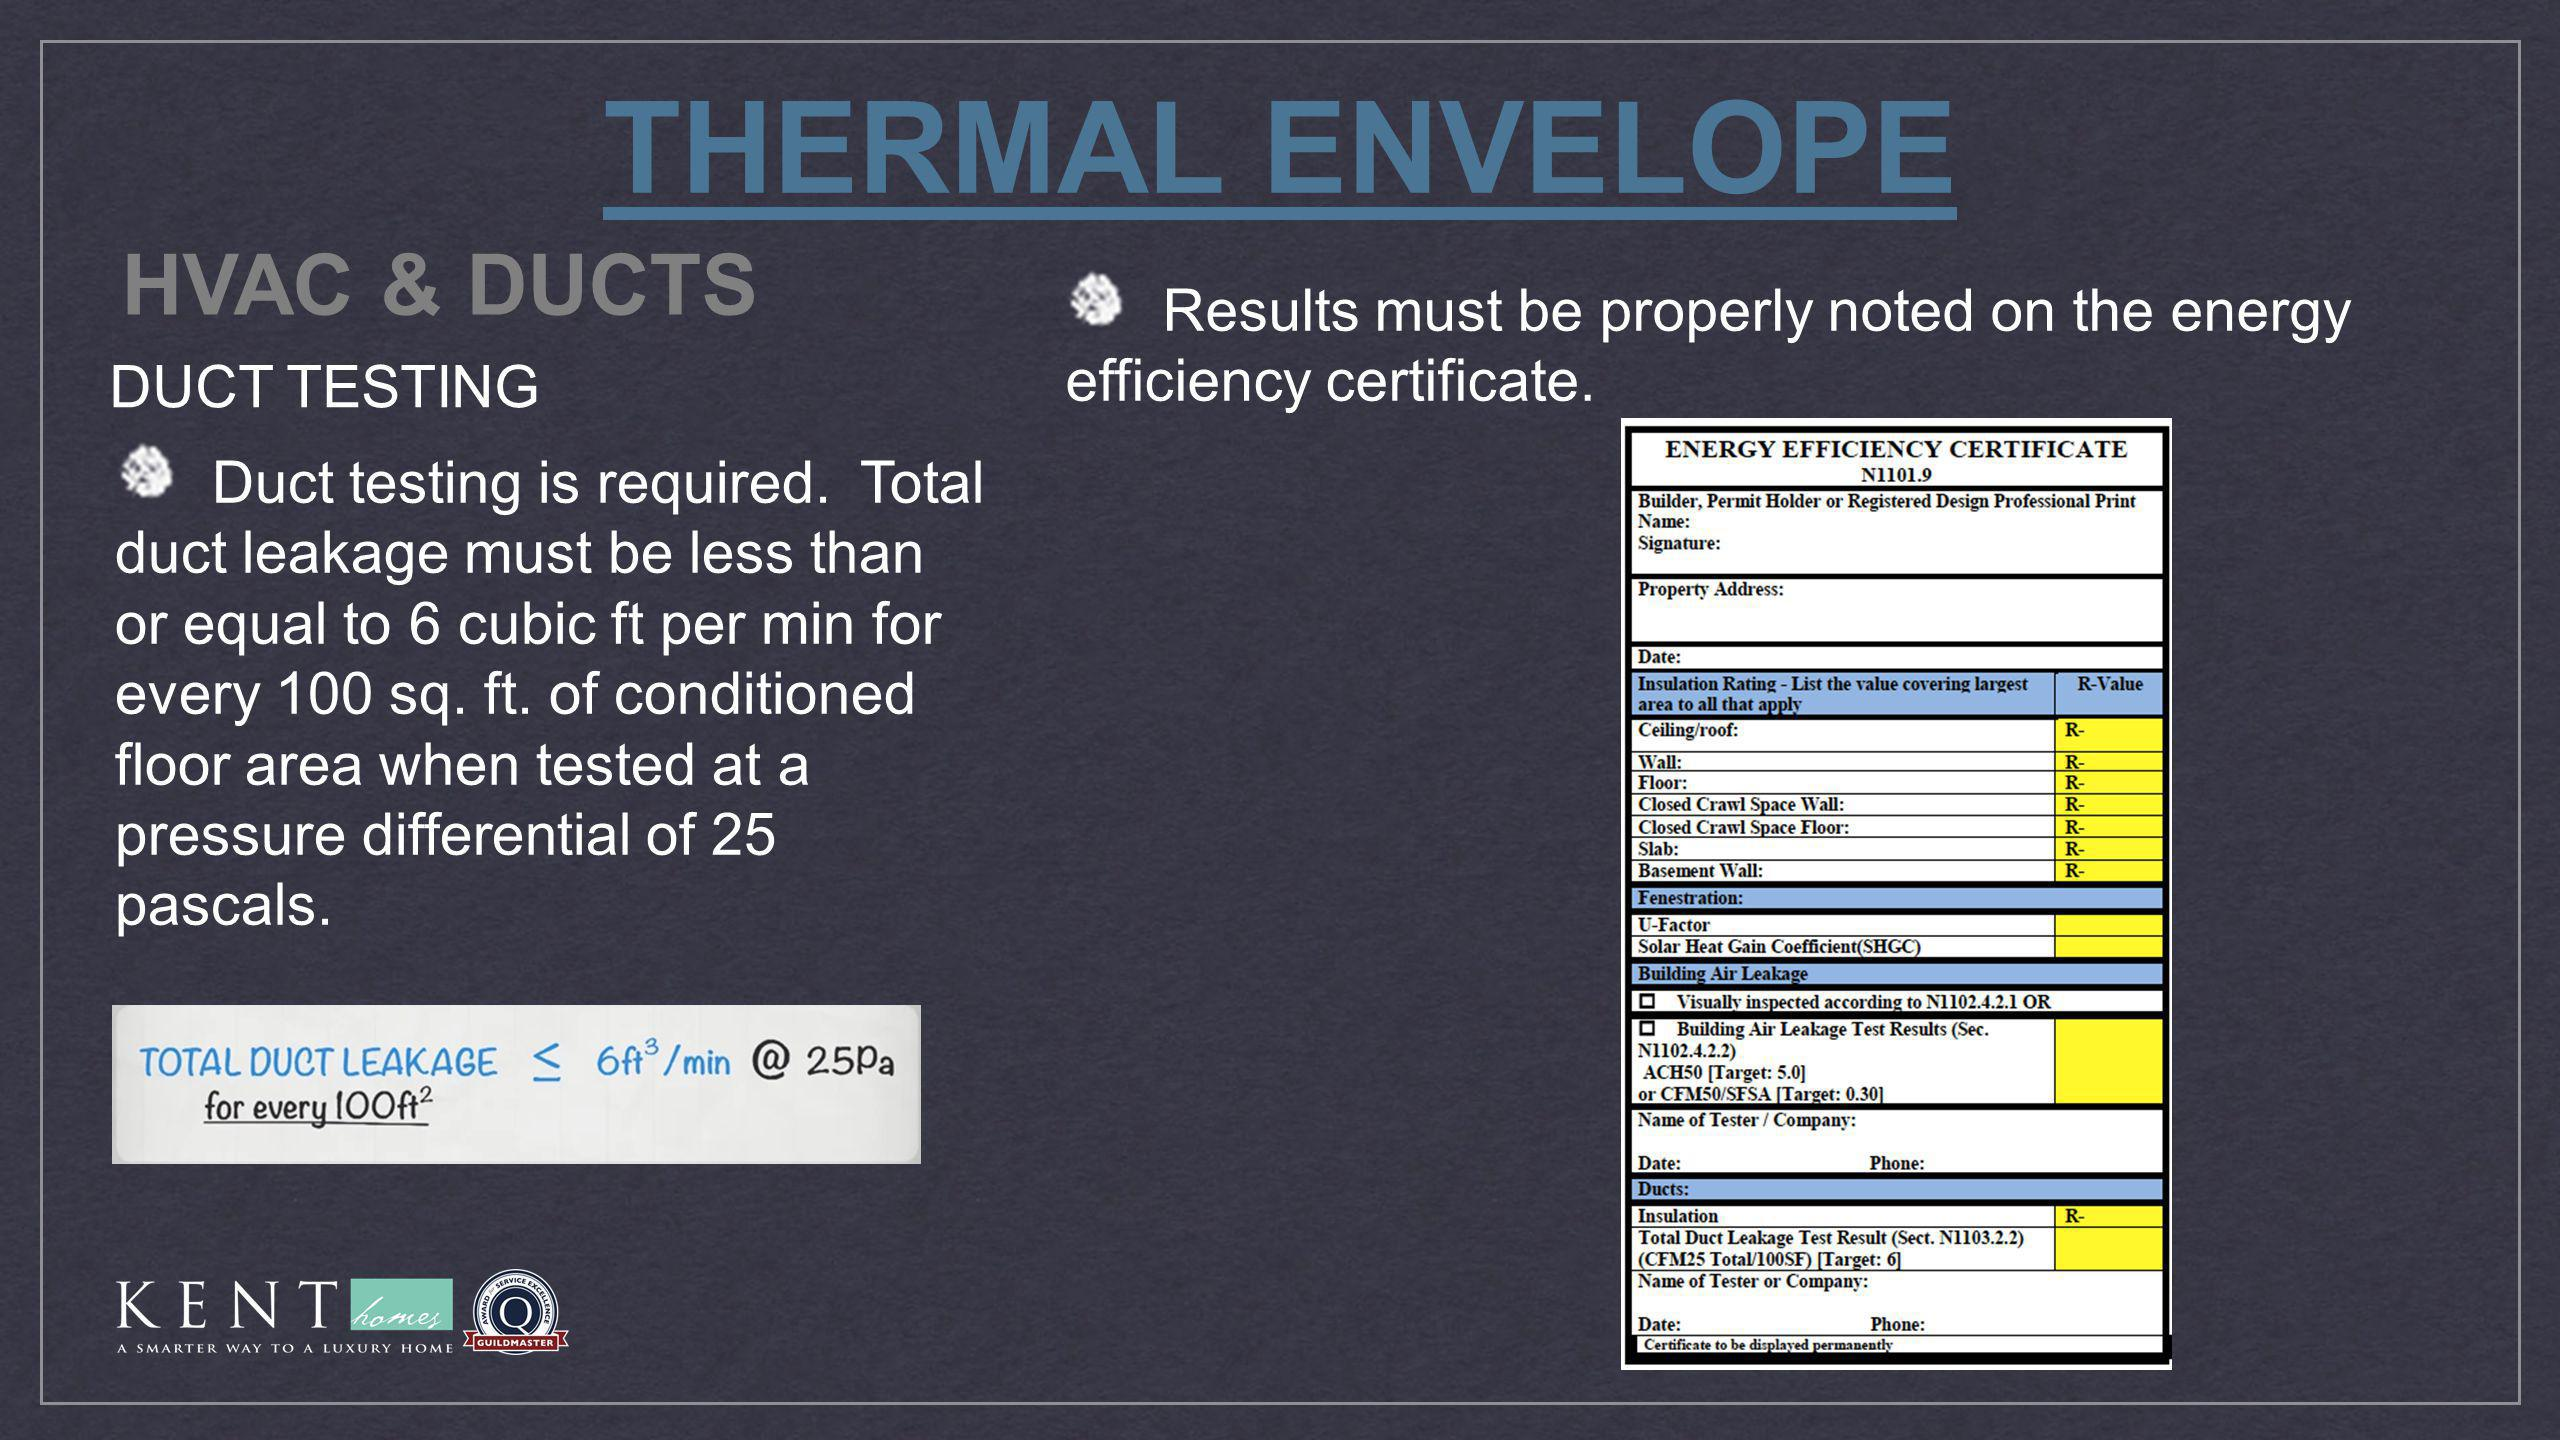 THERMAL ENVELOPE HVAC & DUCTS DUCT TESTING Duct testing is required. Total duct leakage must be less than or equal to 6 cubic ft per min for every 100